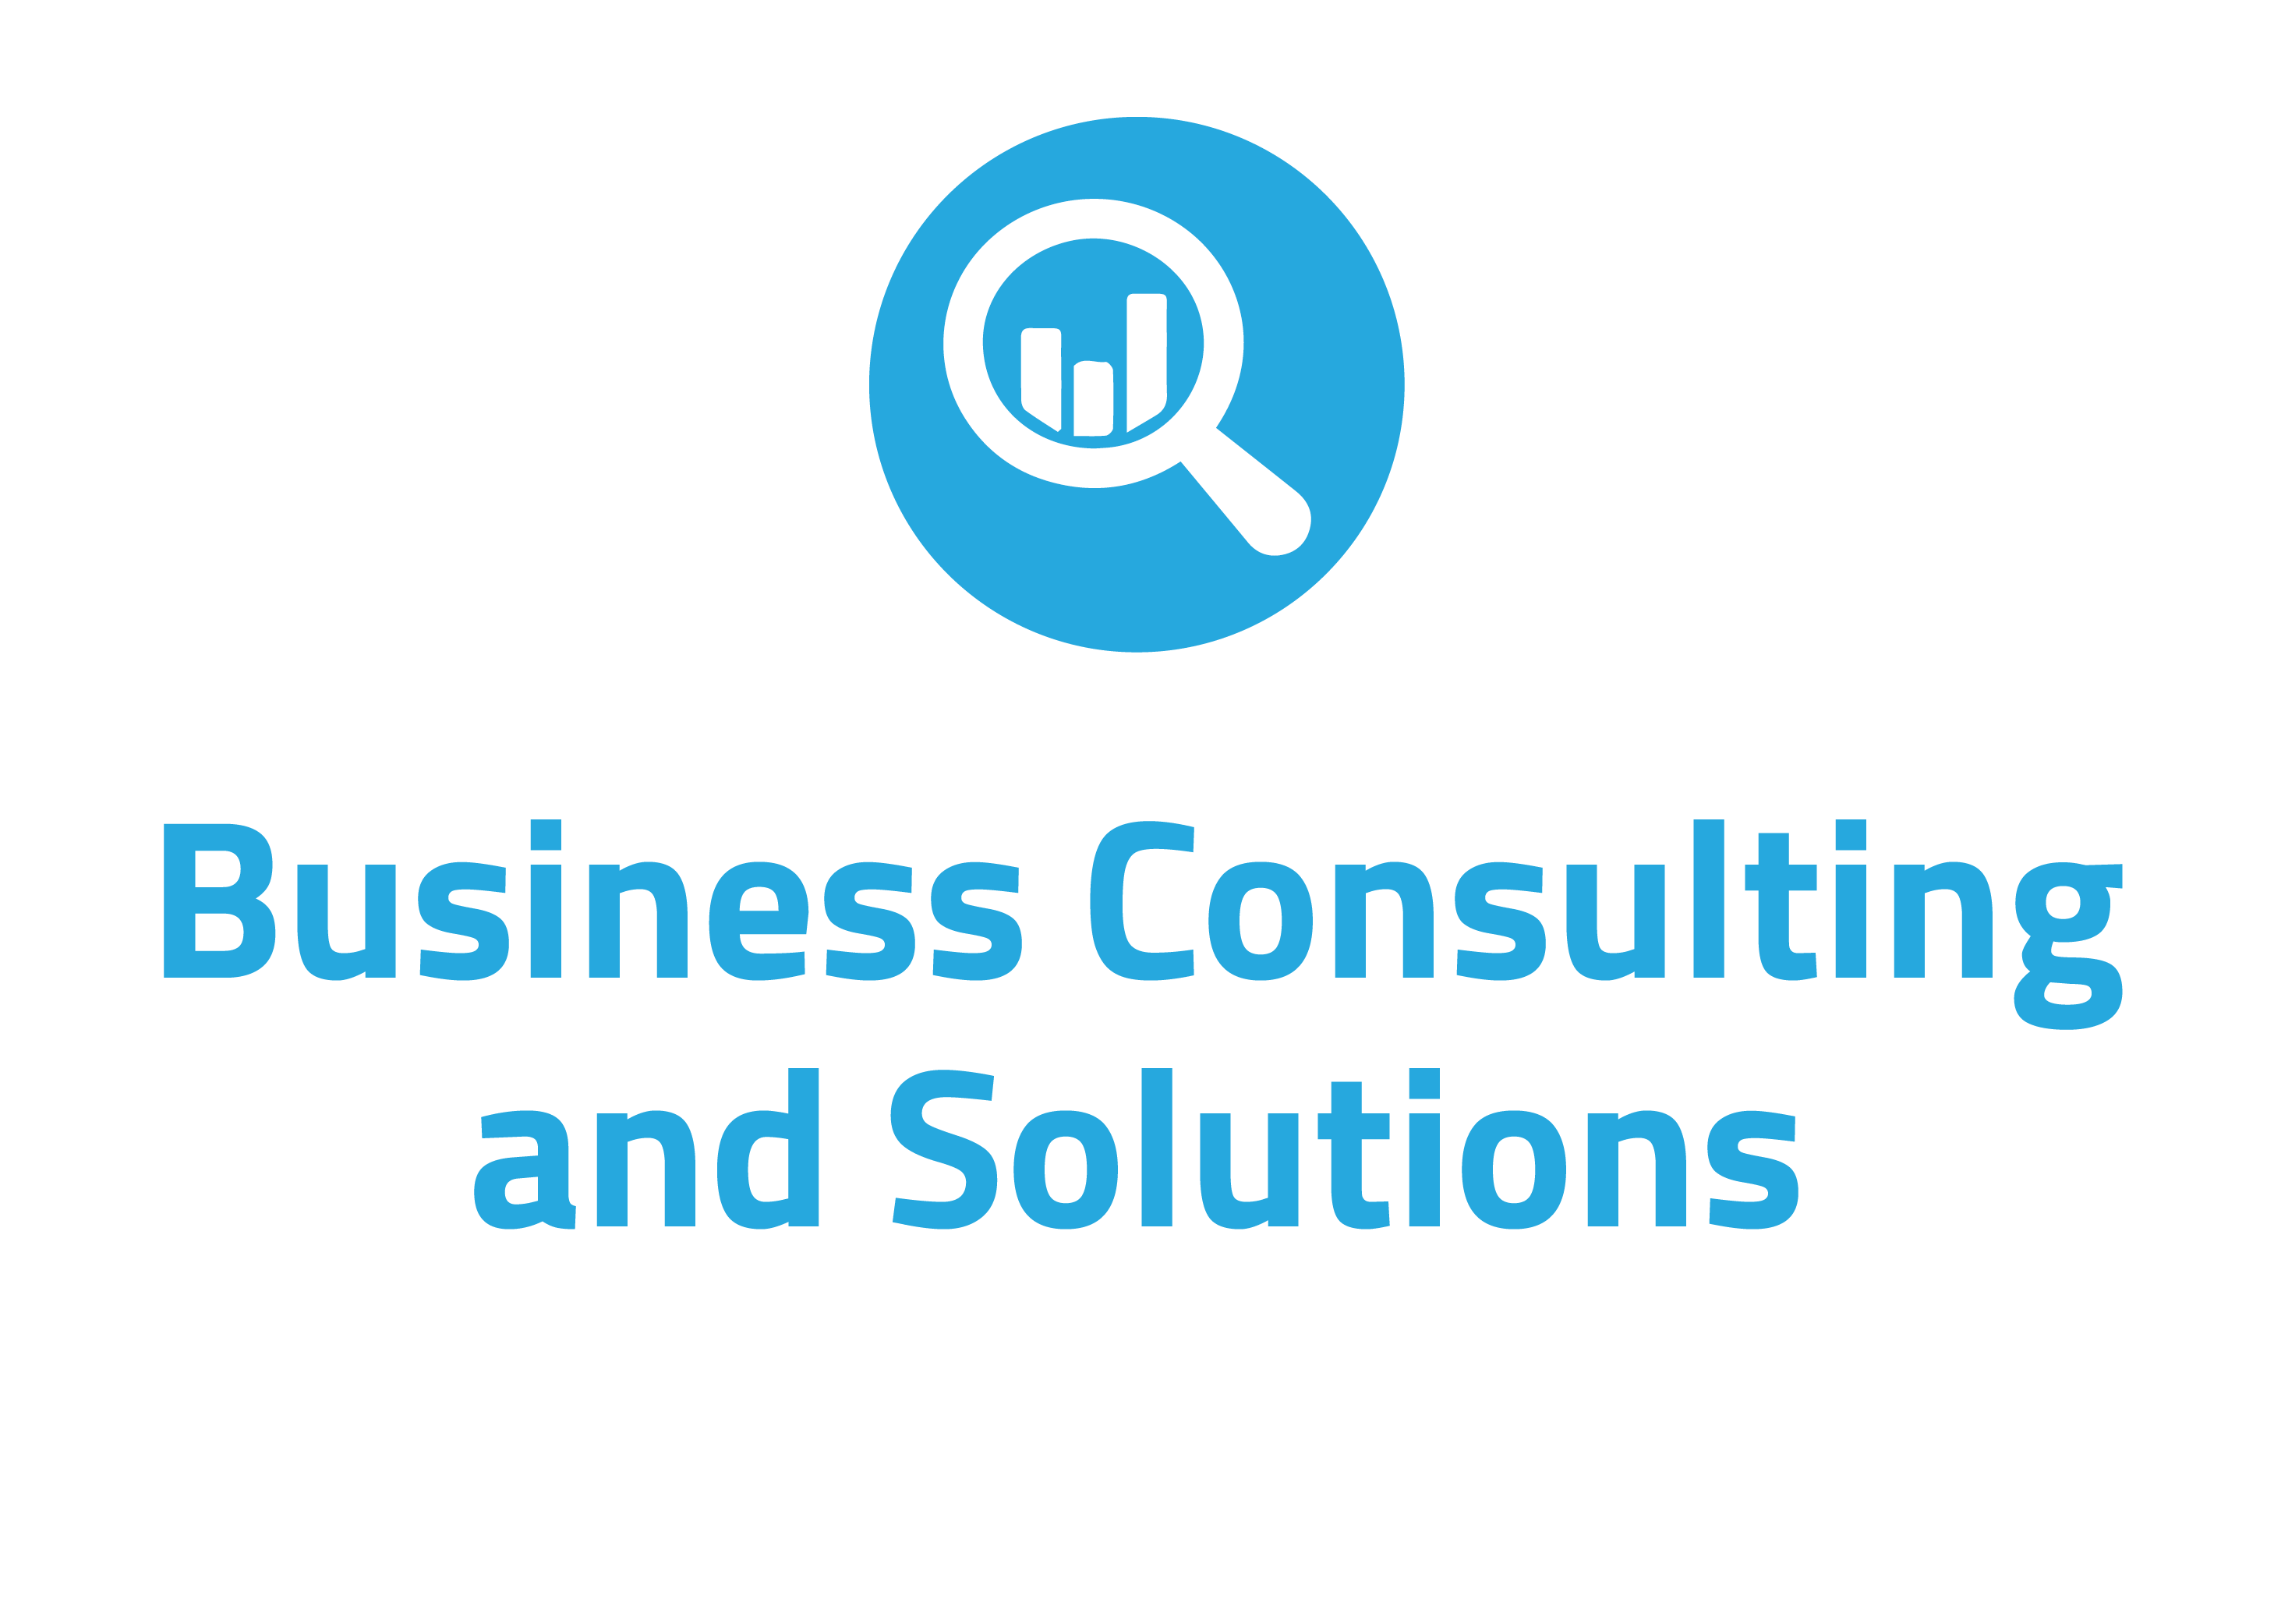 Business consulting and solutions for the insurance and financial services industry in Ireland